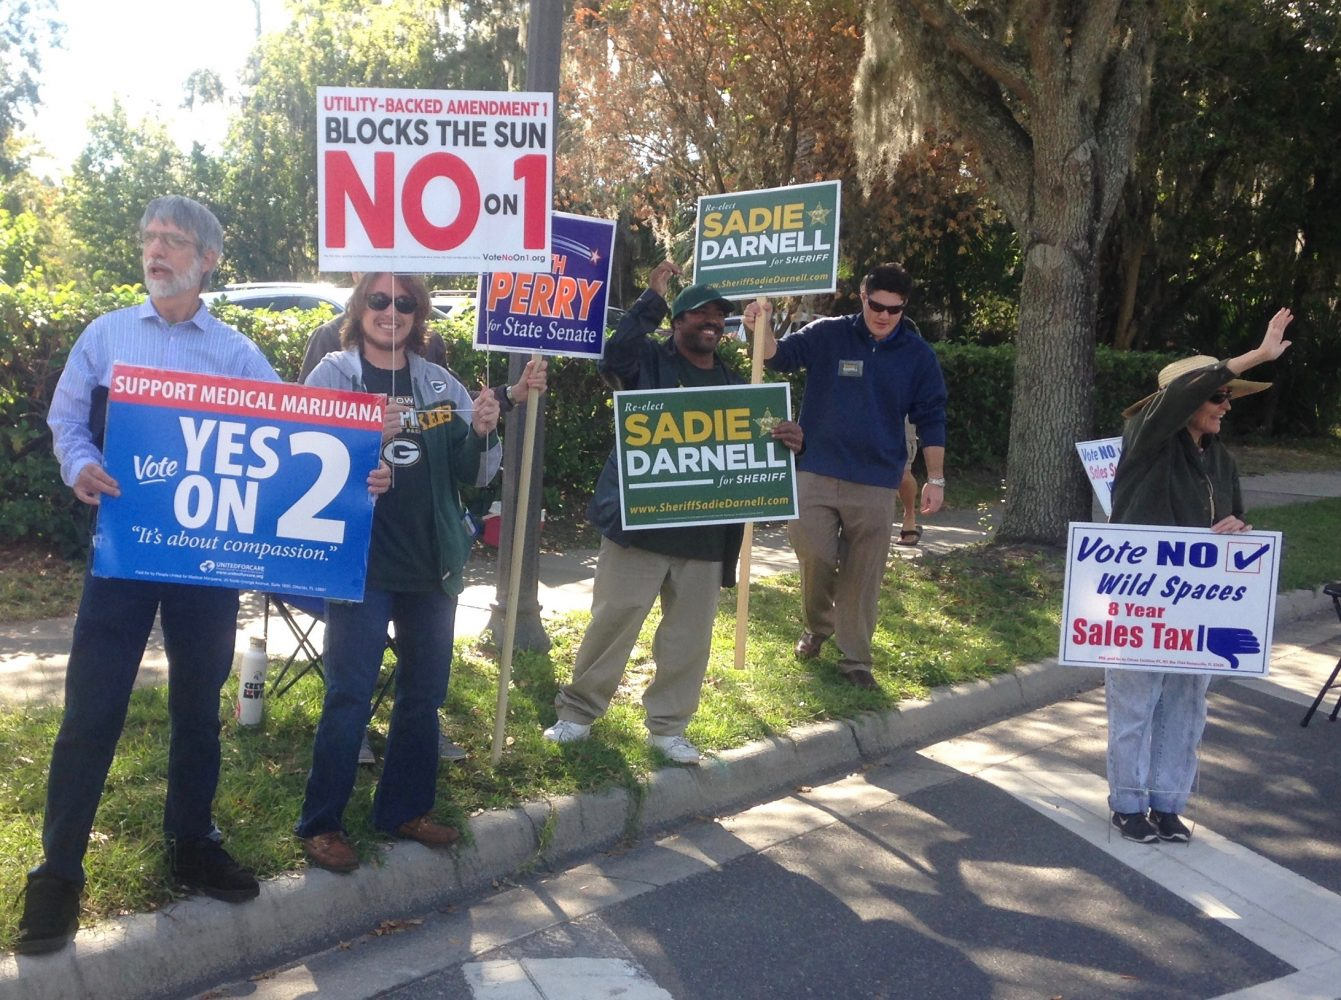 """Political supporters hold election signs Monday outside the Alachua County Supervisor of Elections Office. """"A lot of people have an opportunity here [to early vote] but not outside of the city, so this is an important place to be,"""" said Joe Fluriach, 26 (unseen holding the Keith Perry sign). (Cecilia Mazanec/WUFT News)"""